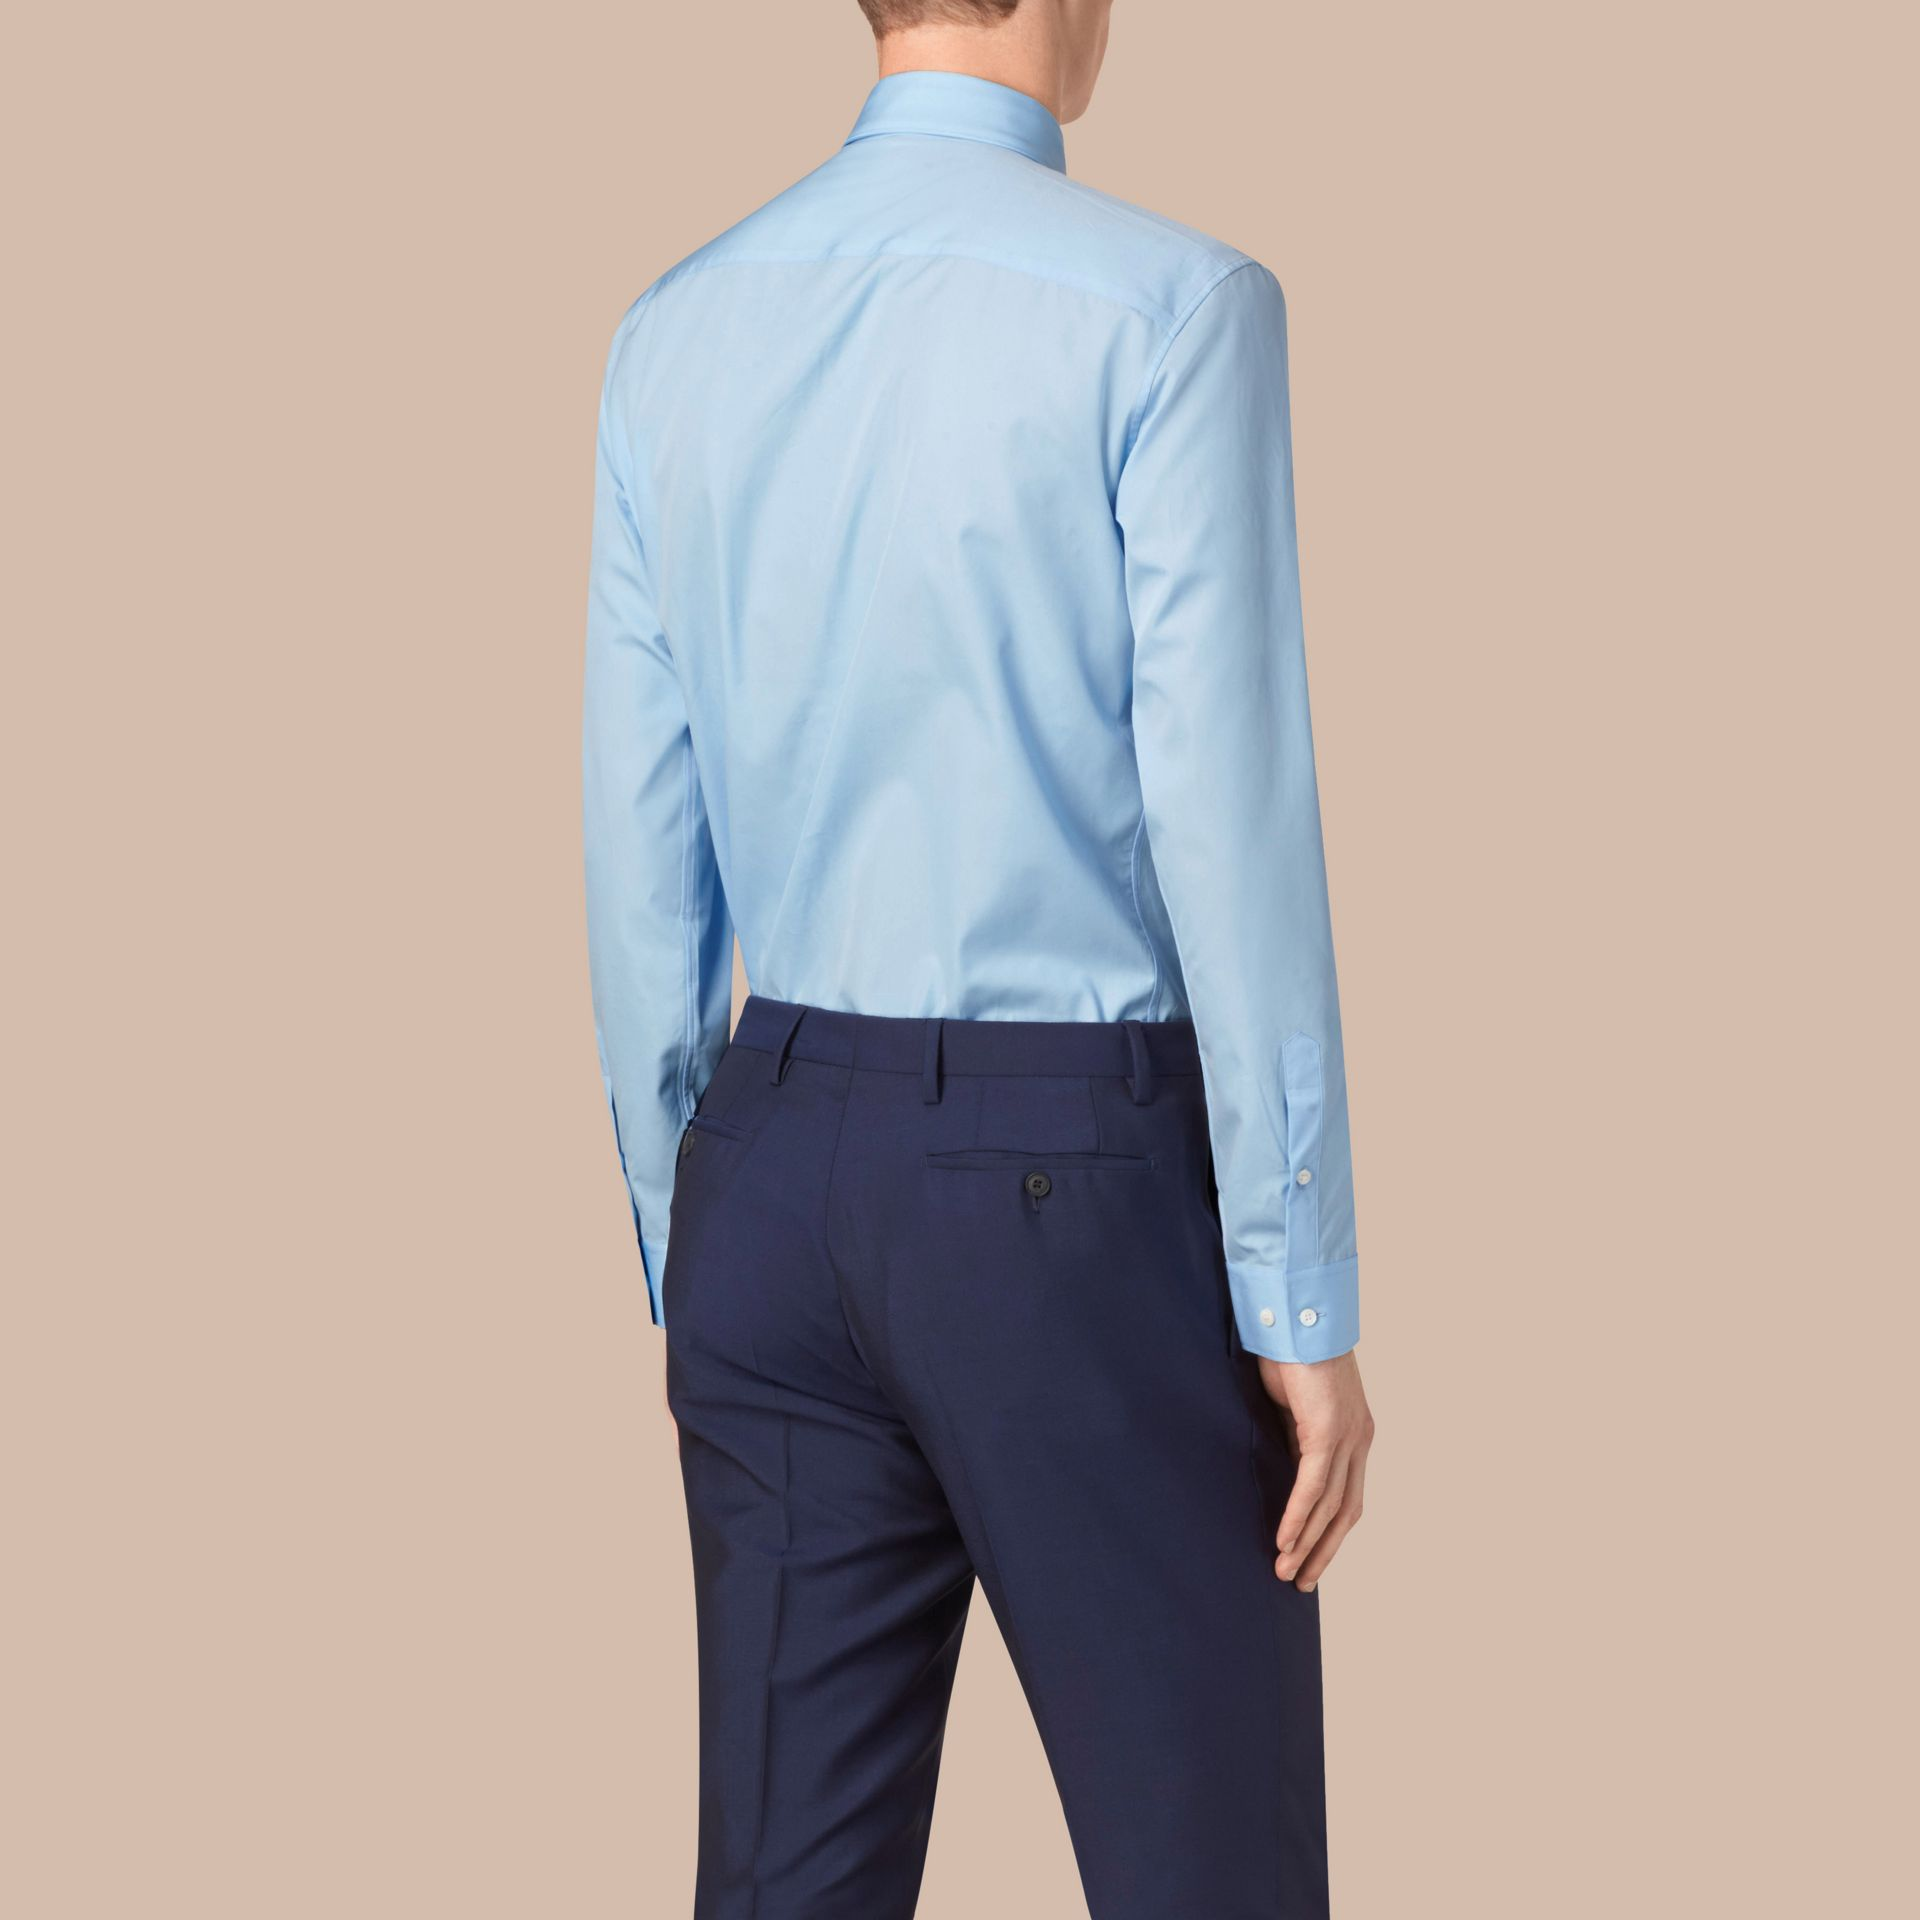 City blue Modern Fit Button-down Collar Cotton Poplin Shirt City Blue - gallery image 3